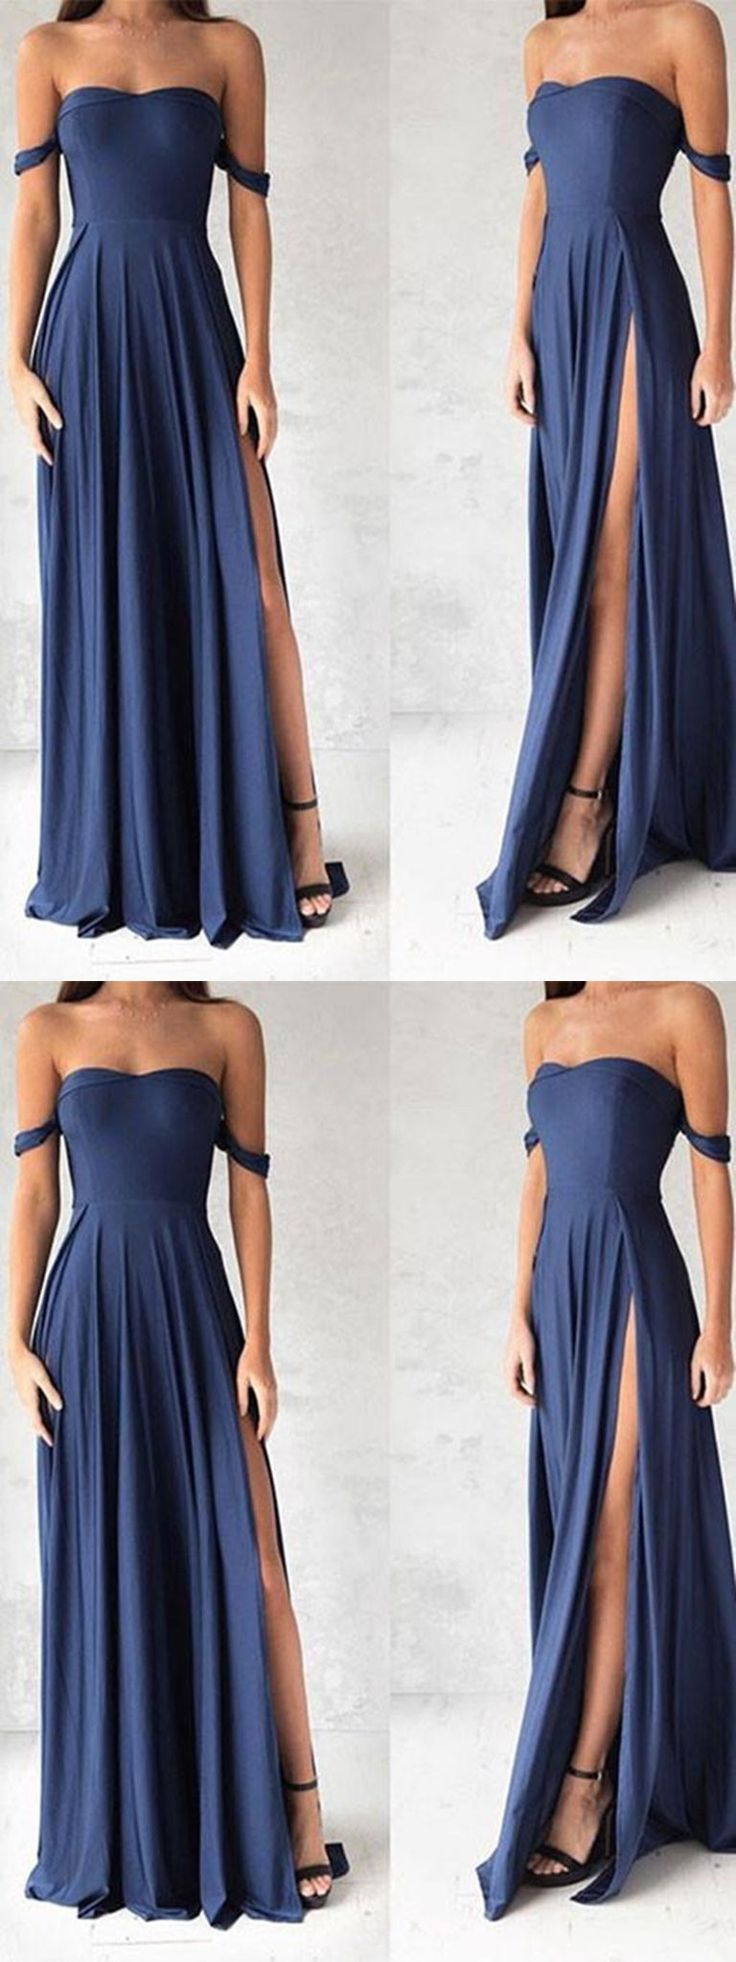 Sweetheart Neck Off Shoulder Blue Chiffon Prom Dress, Blue Bridesmaid Dress, Formal Dress #offshoulder #prom #promdress #prom2018 #prom2k18 #navybluepromdress #bluepromdress #bridesmaiddress #bluebridesmaiddress #bluedress